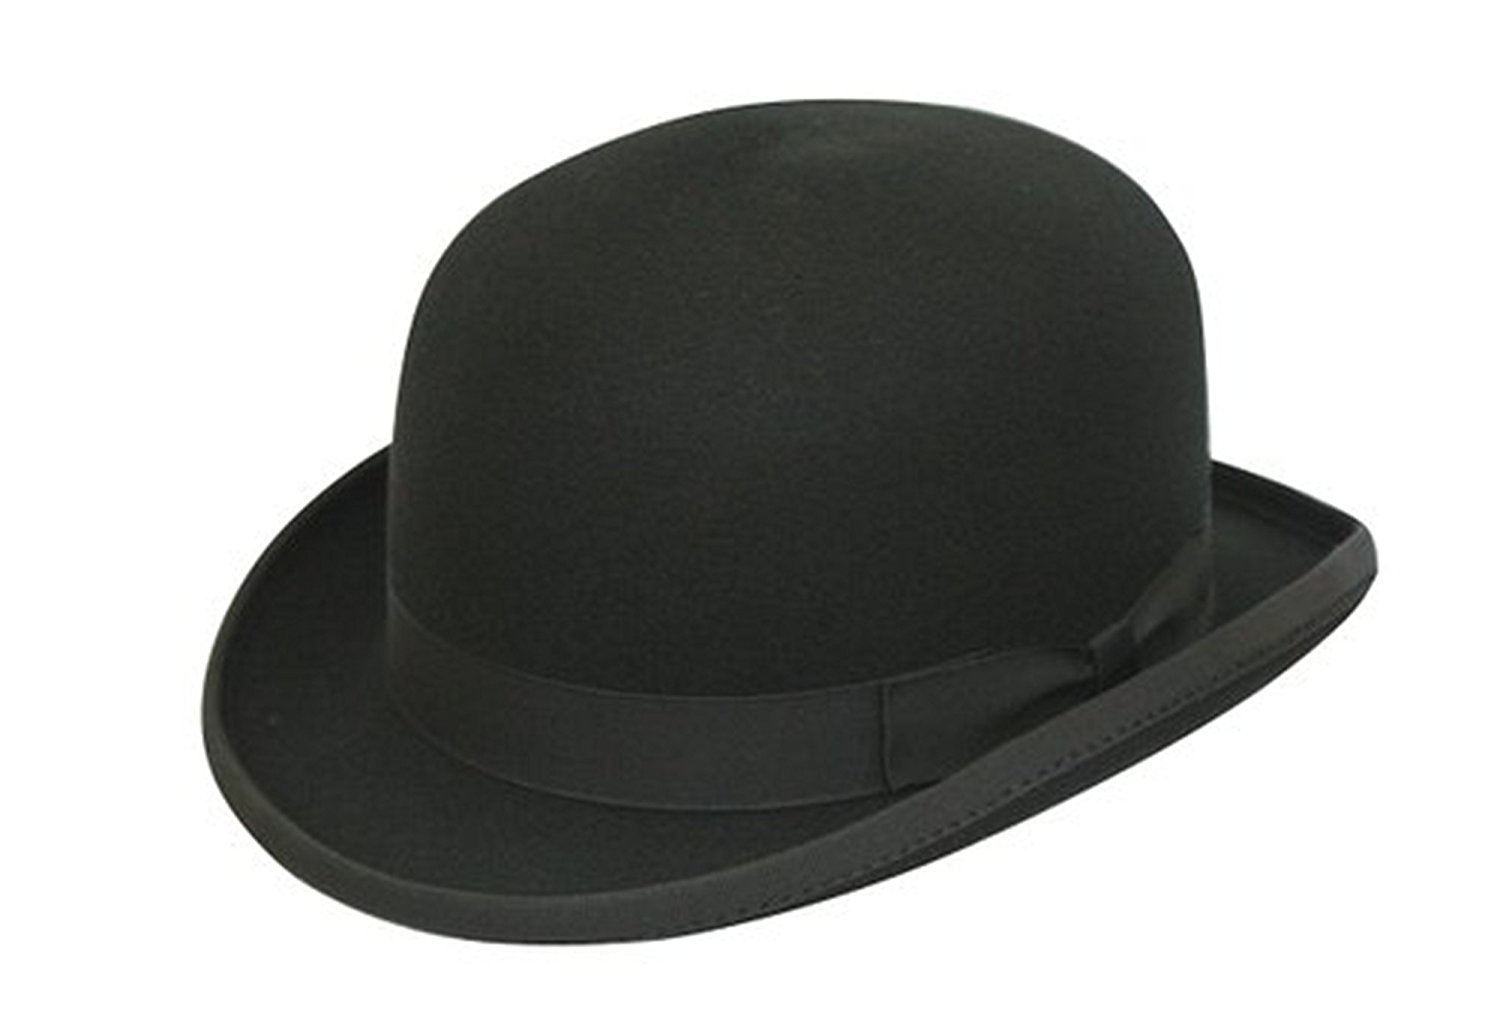 777c3fff 100% Wool Plain Black Classic Round Top Hard Bowler Hat - Hand Made - With